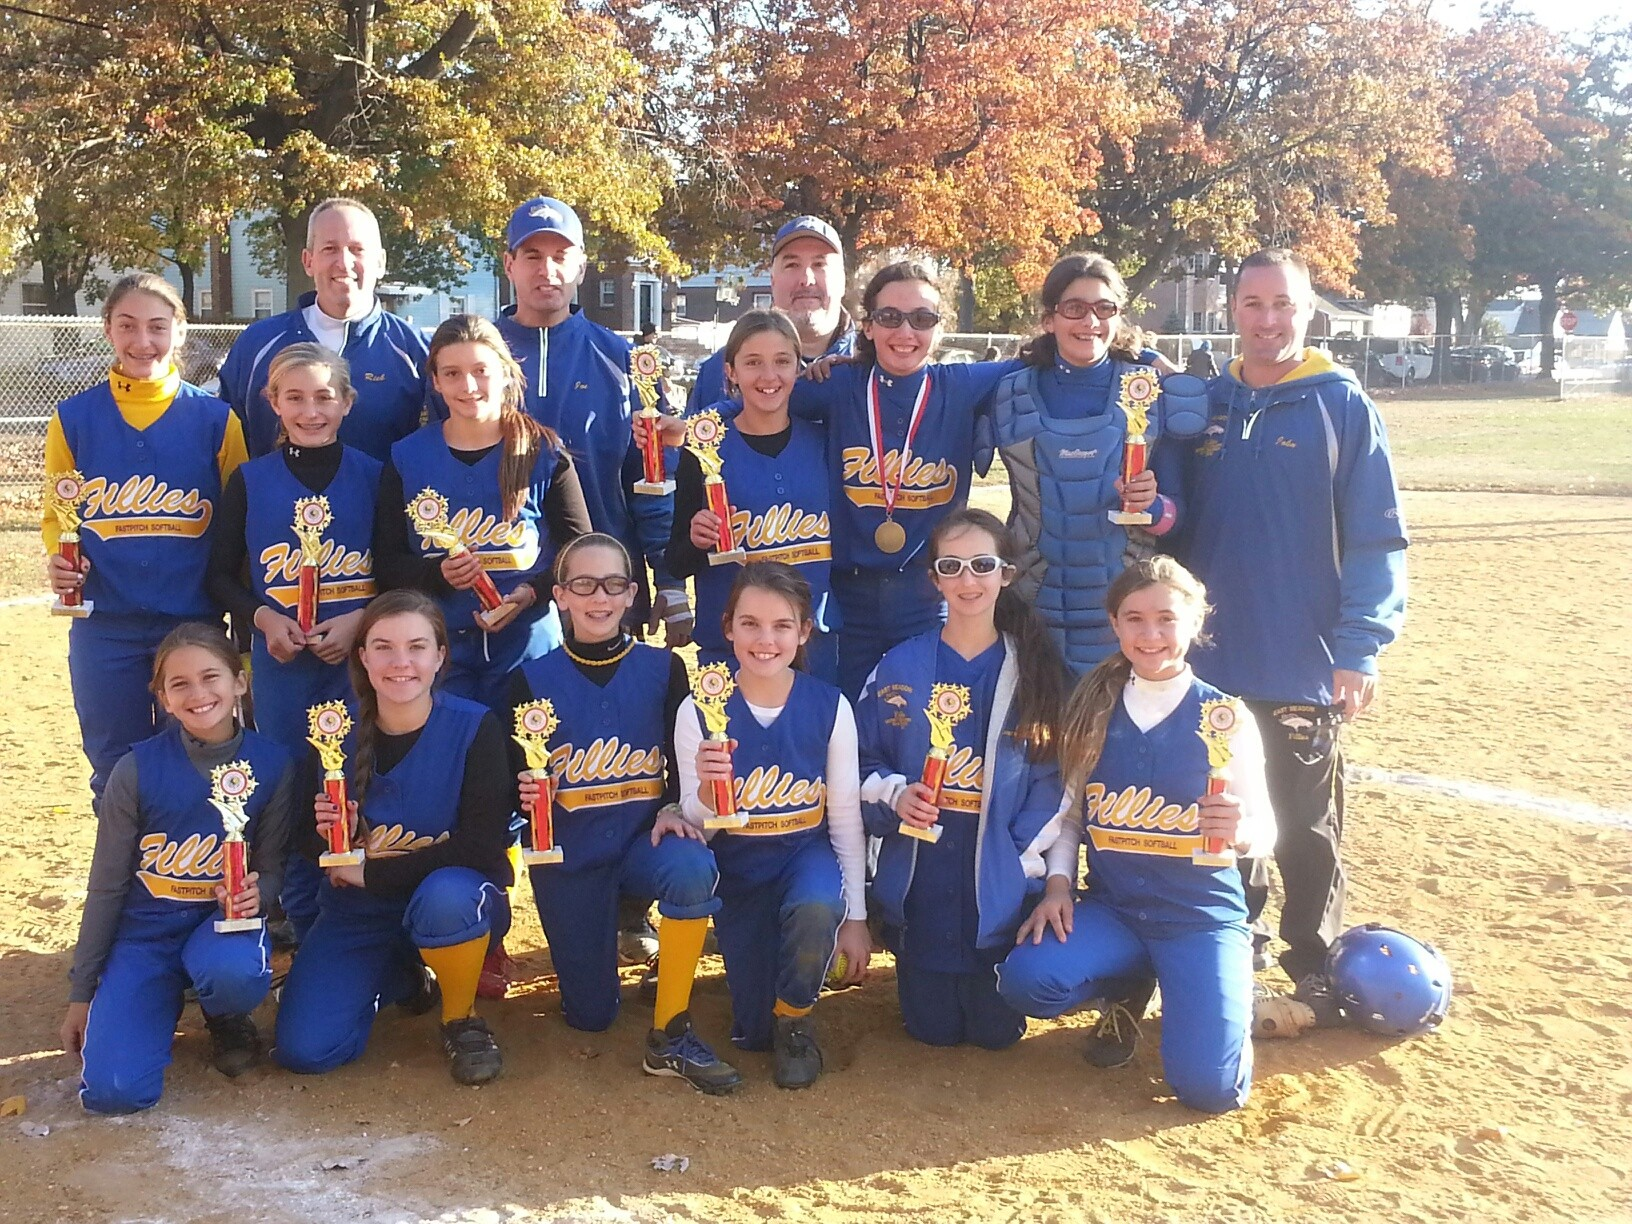 The East Meadow Fillies with their championship trophies